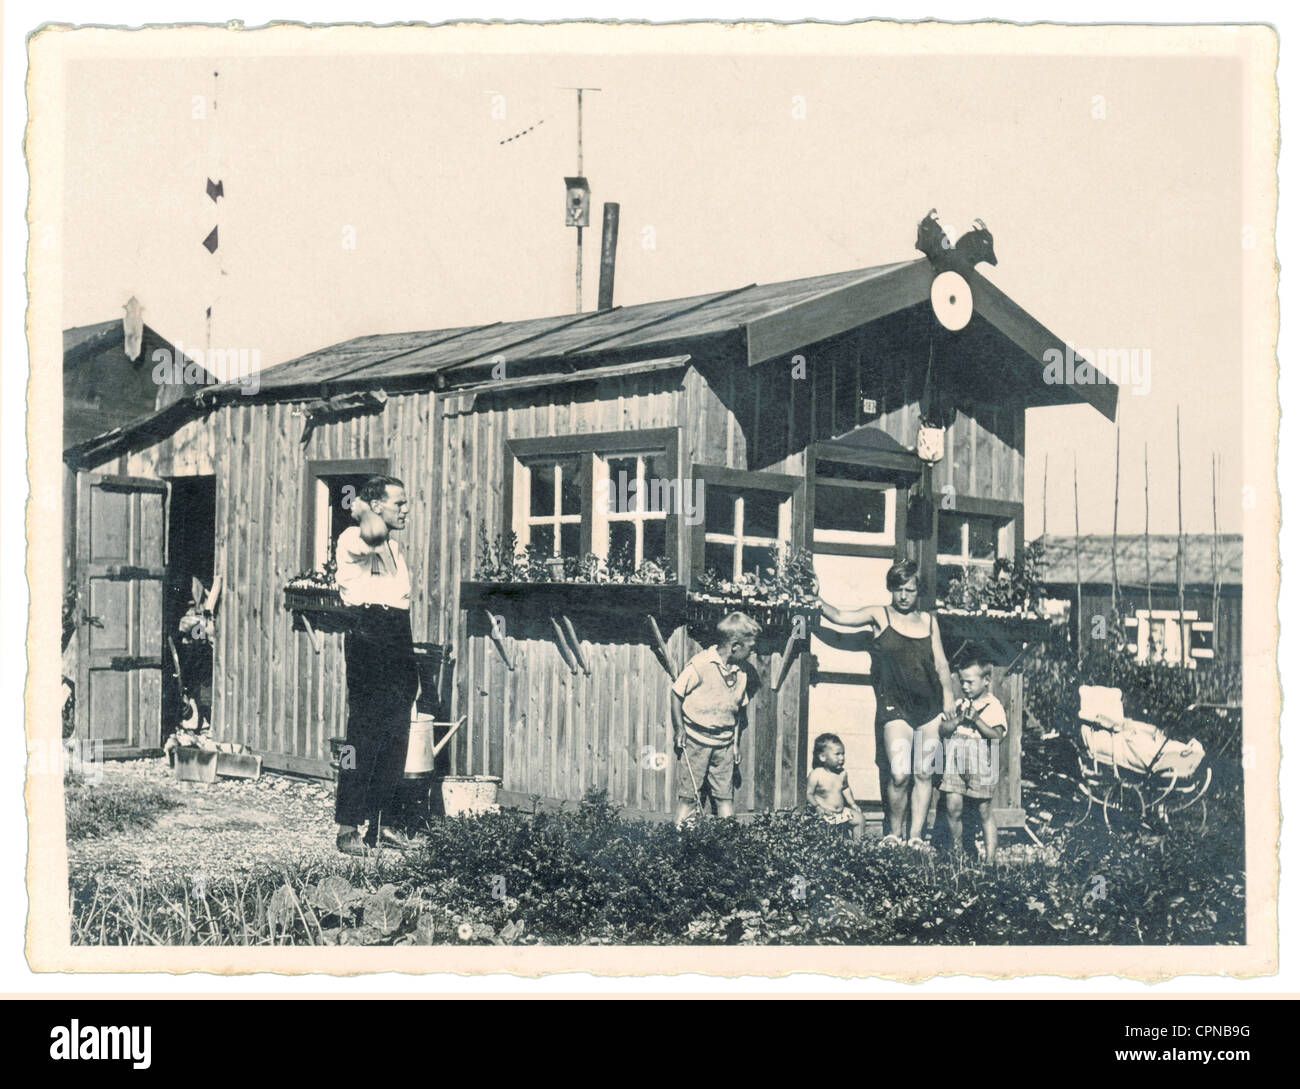 leisure time, family in allotment garden, Germany, circa 1930, Additional-Rights-Clearences-NA Stock Photo